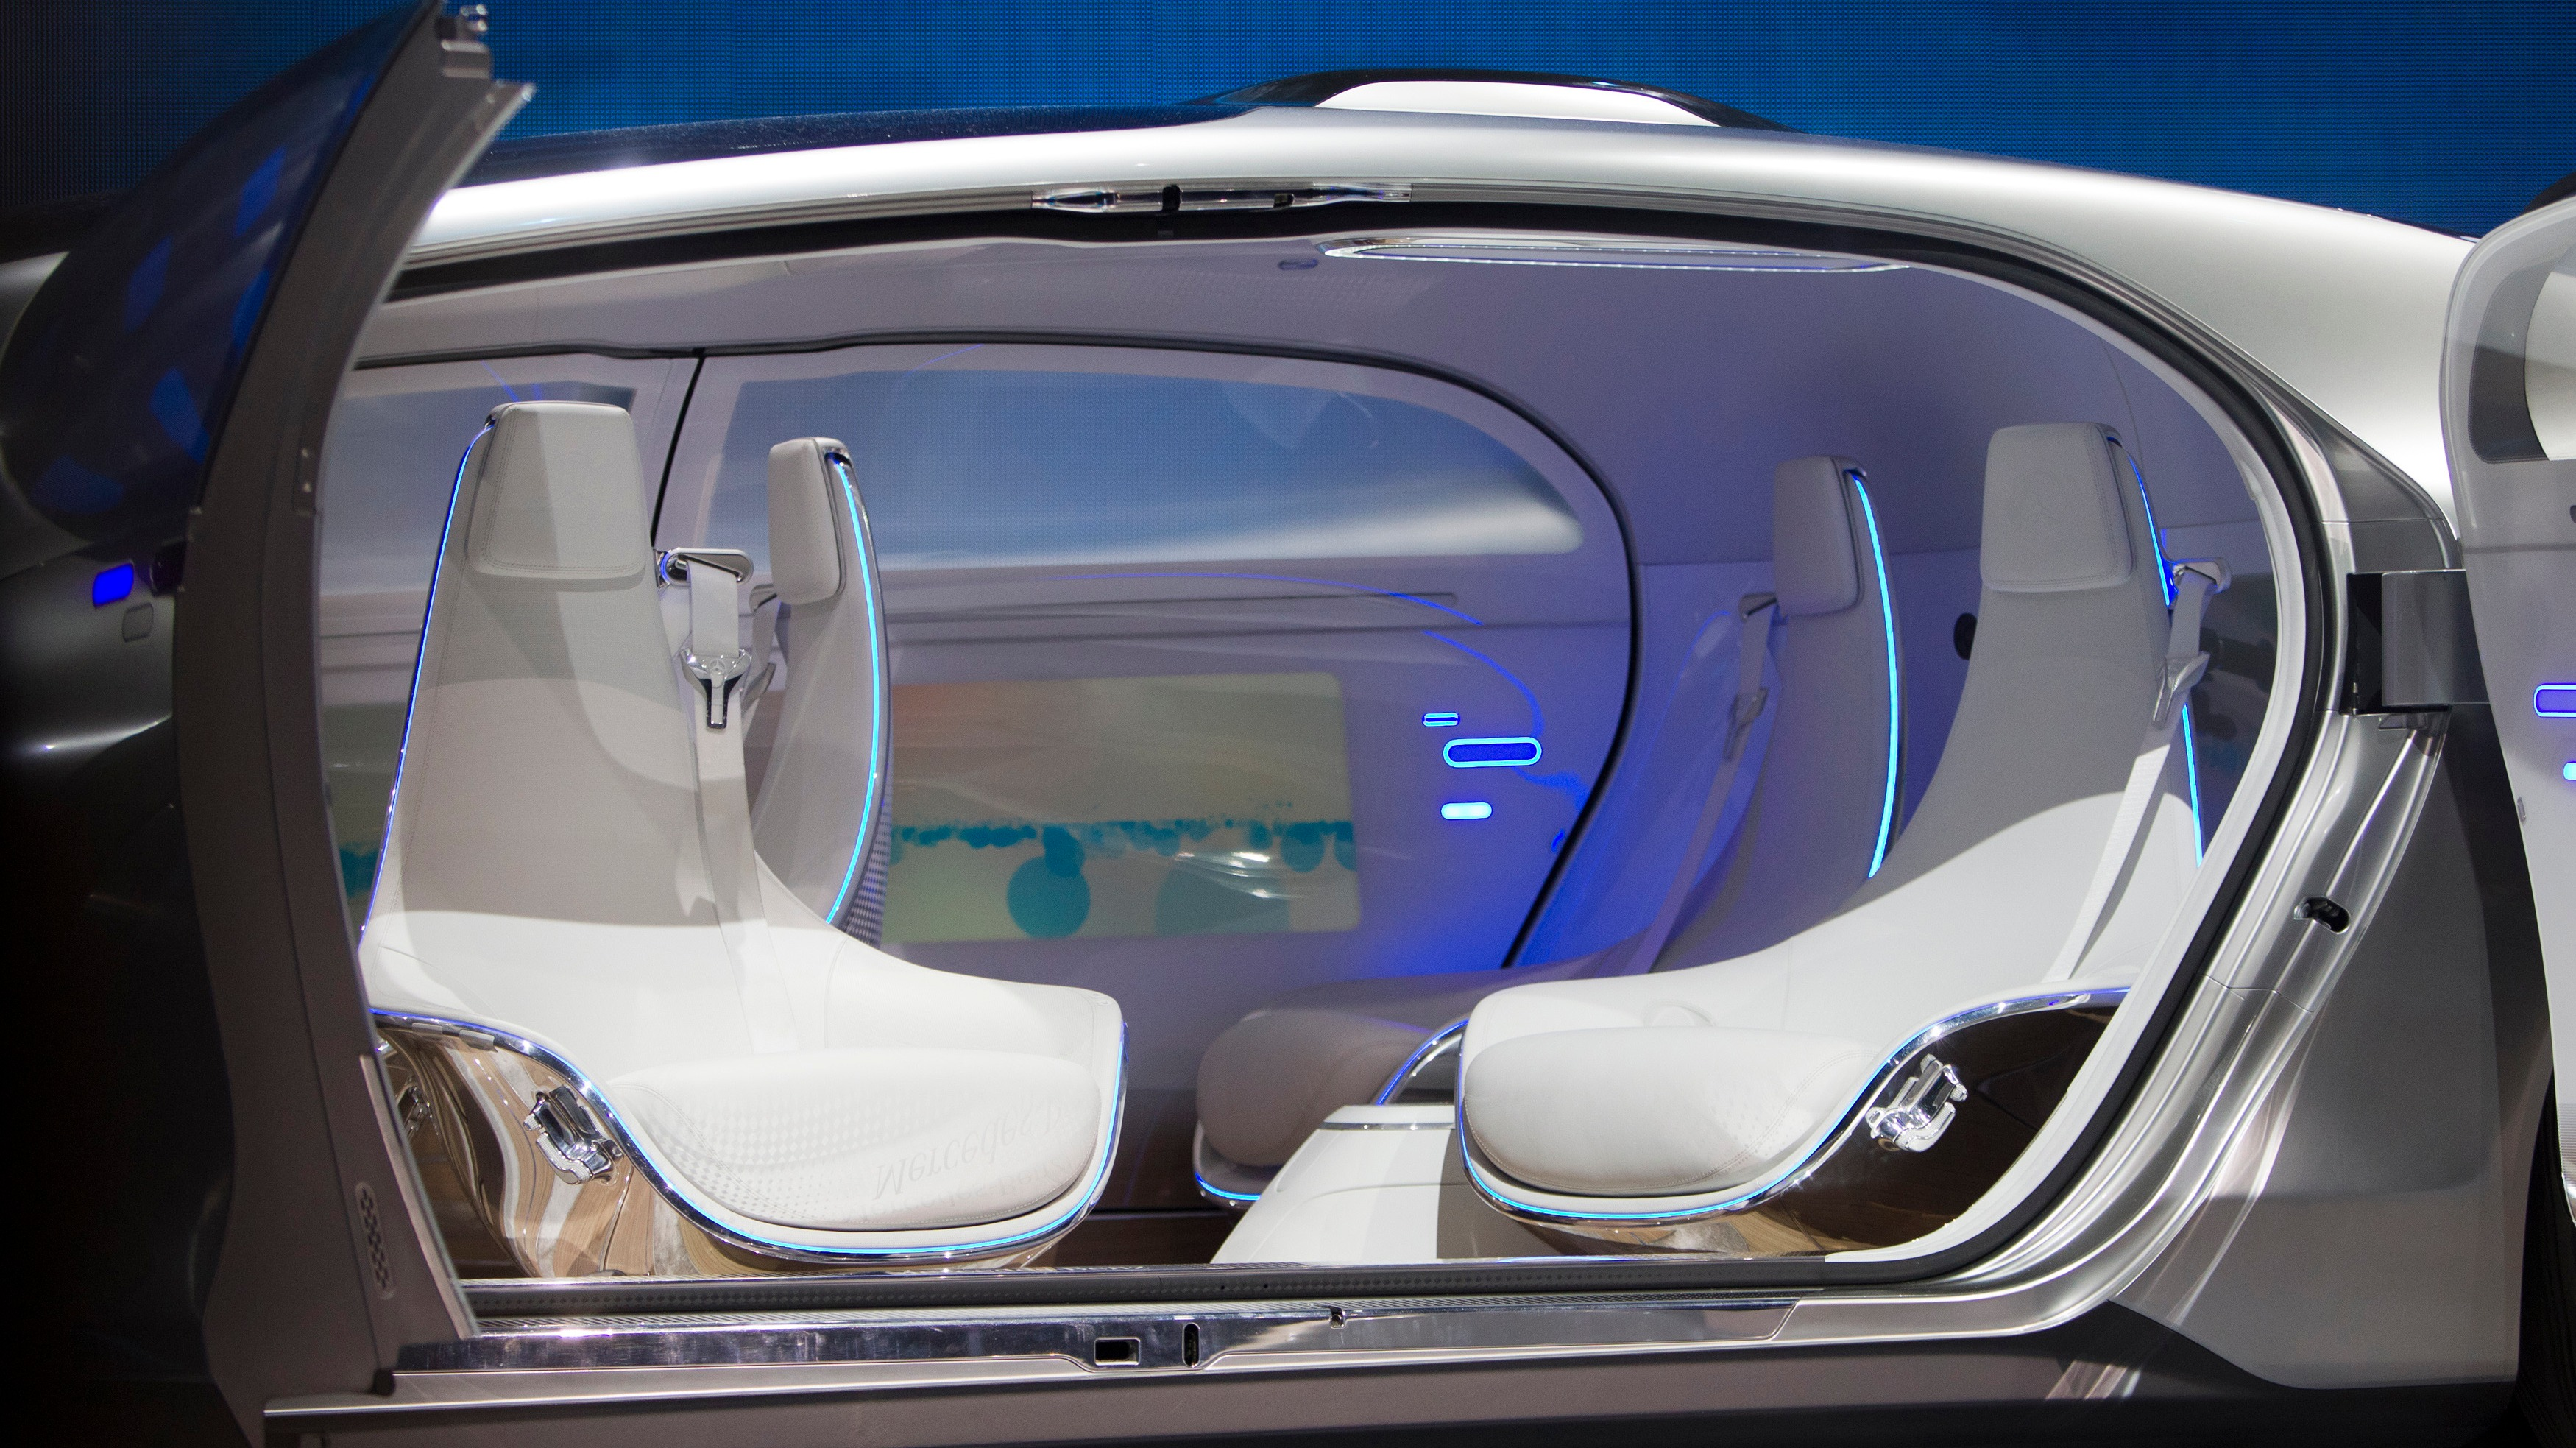 Mercedes Offers Glimpse Inside The Car Of The Future Itv